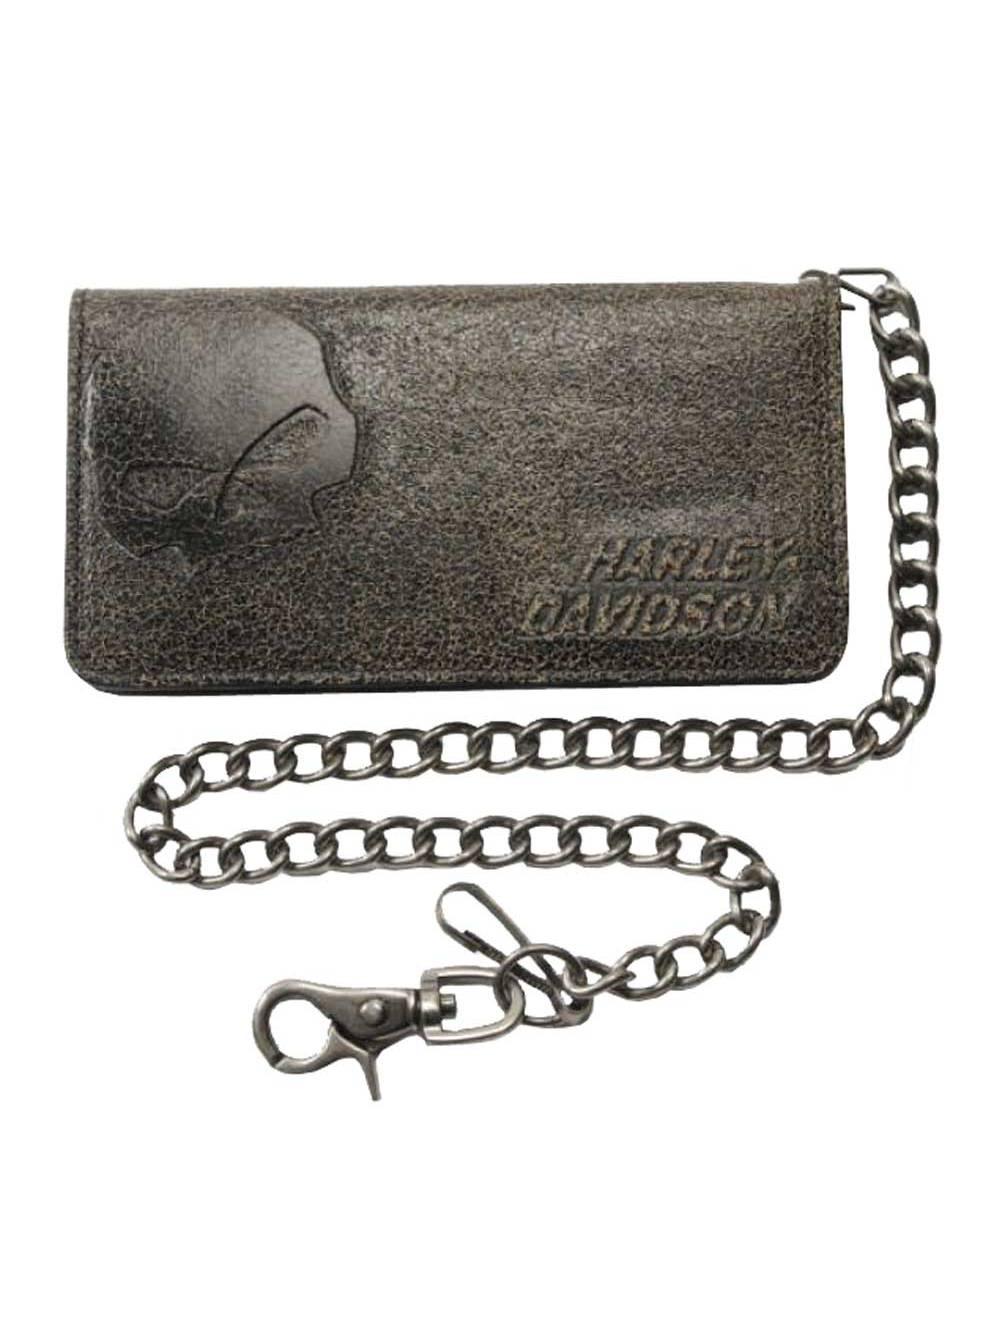 MEN'S BURNISHED BI-FOLD SKULL BIKER CHAIN WALLET picktookshop.myshopify.com [gogle] [sale] [online]